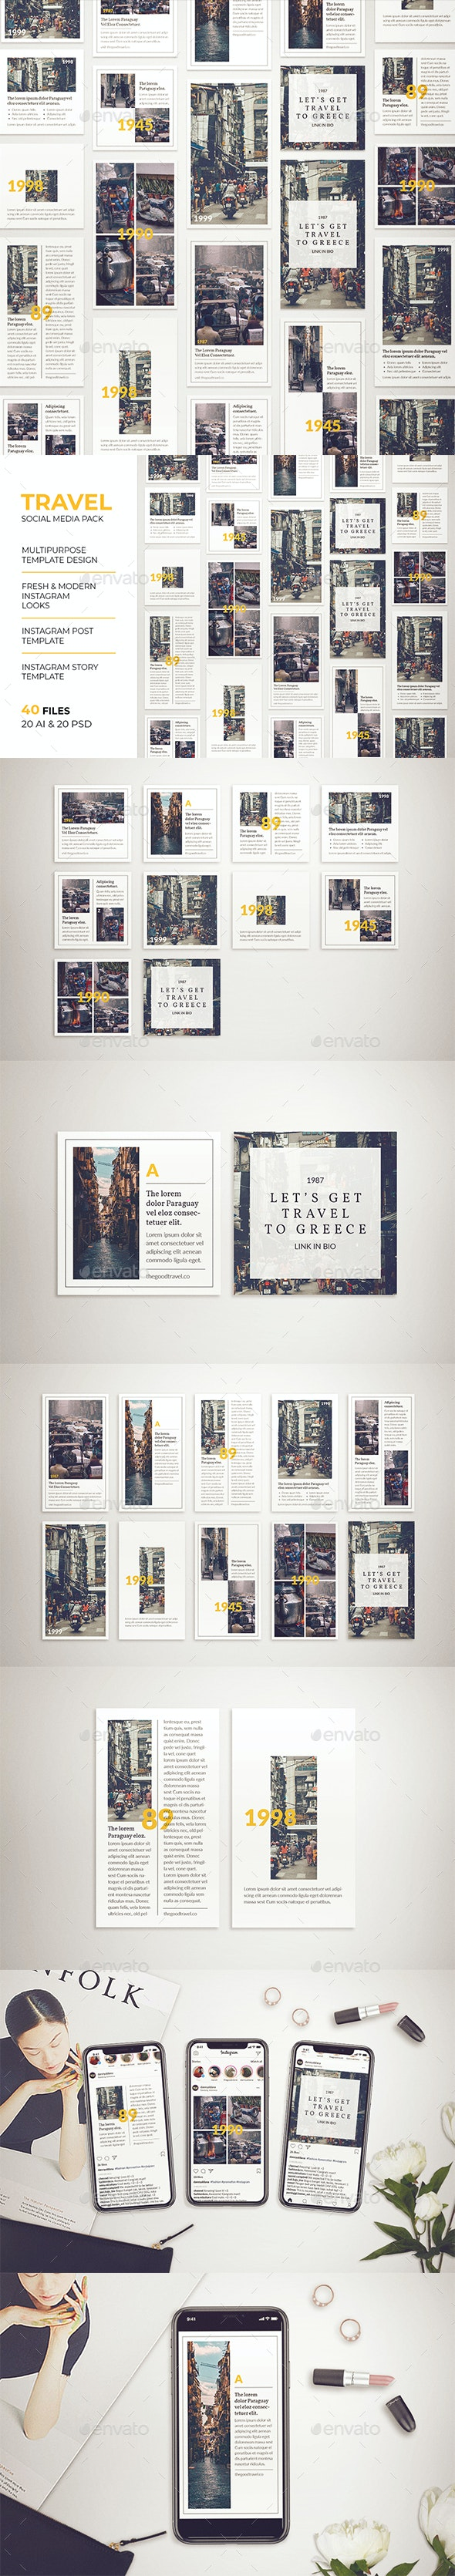 Travel Instagram Post & Instagram Story Template - Social Media Web Elements